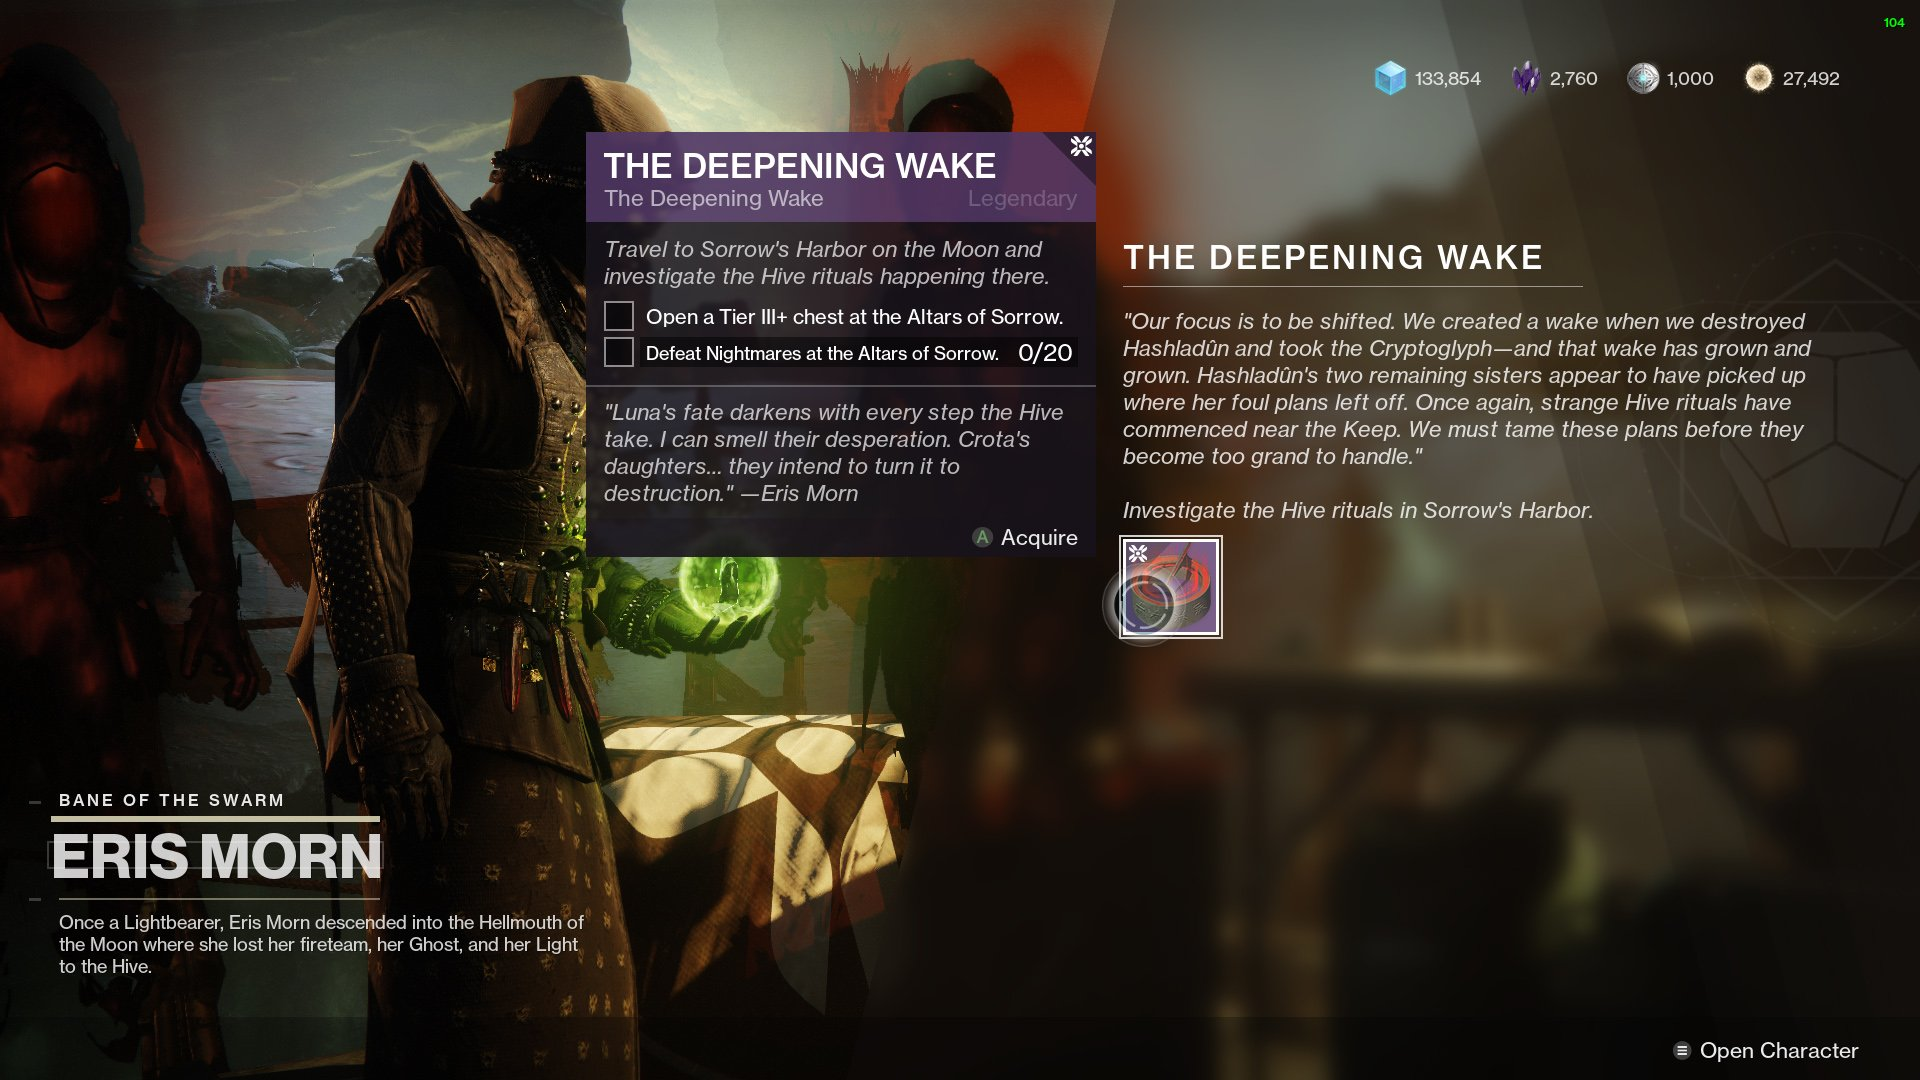 Destiny 2 The Deepening Wake